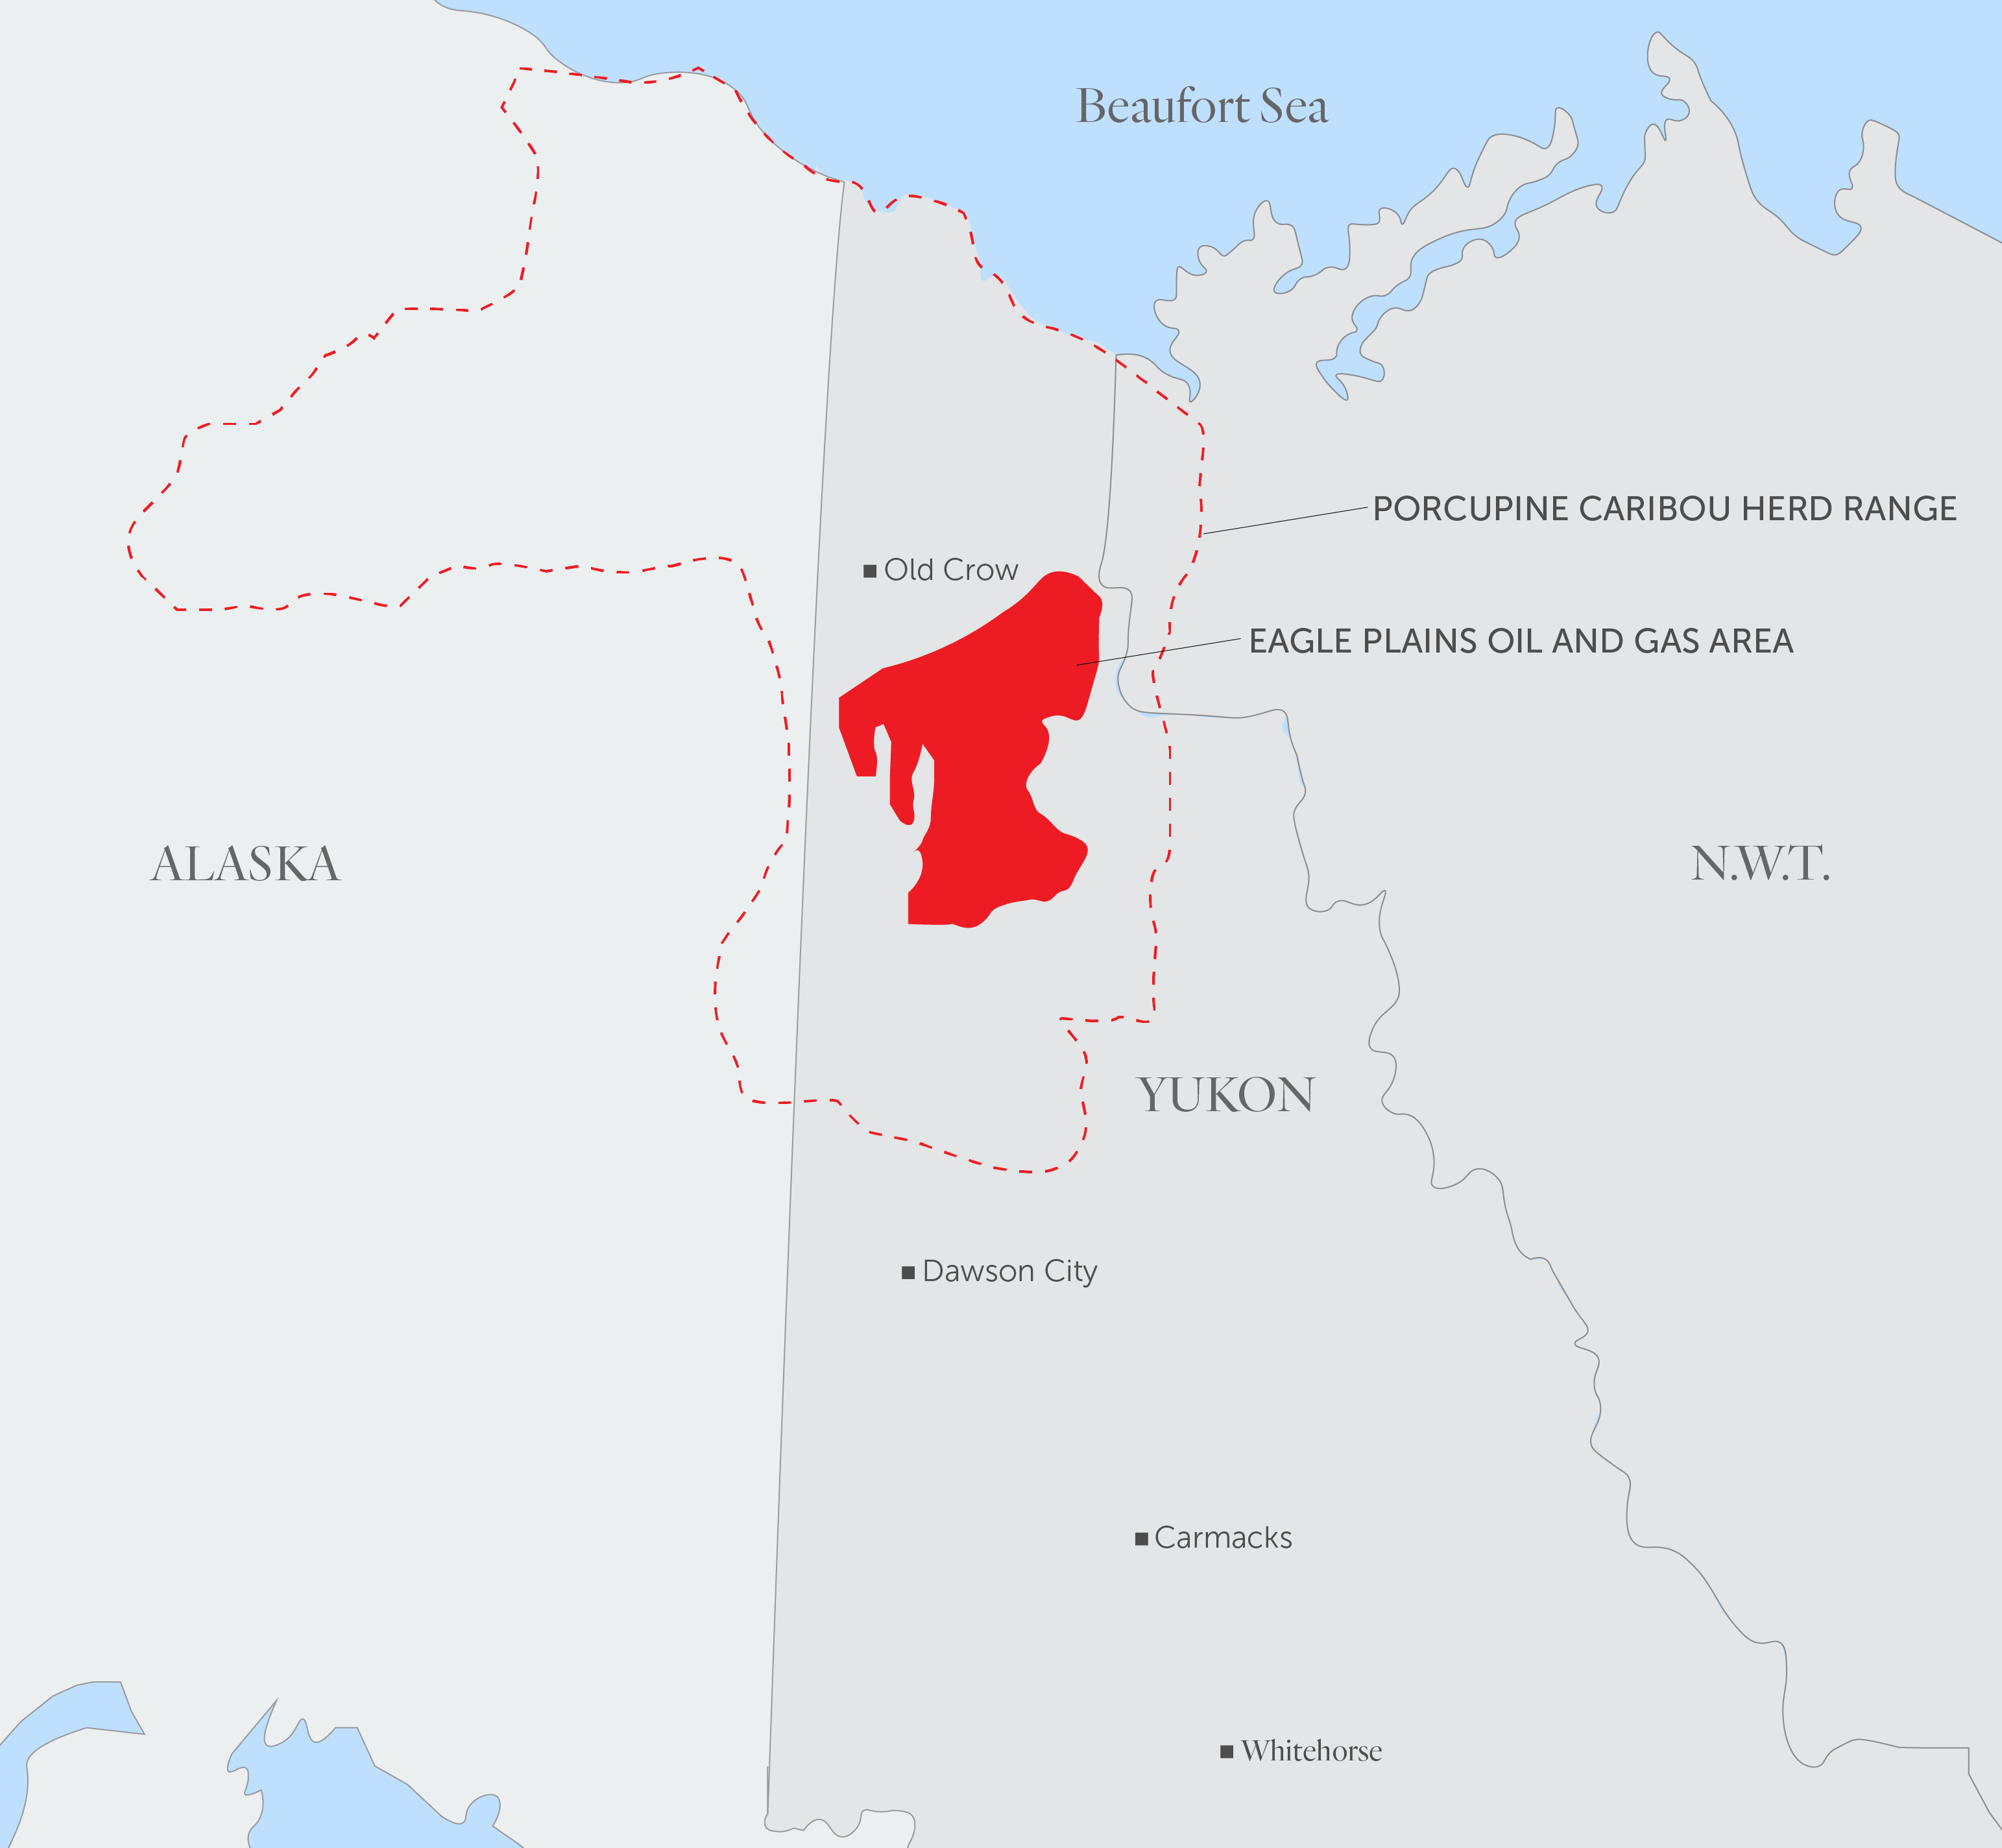 A map showing the location of the Eagle Plains oil and gas area and the range of the Porcupine caribou herd